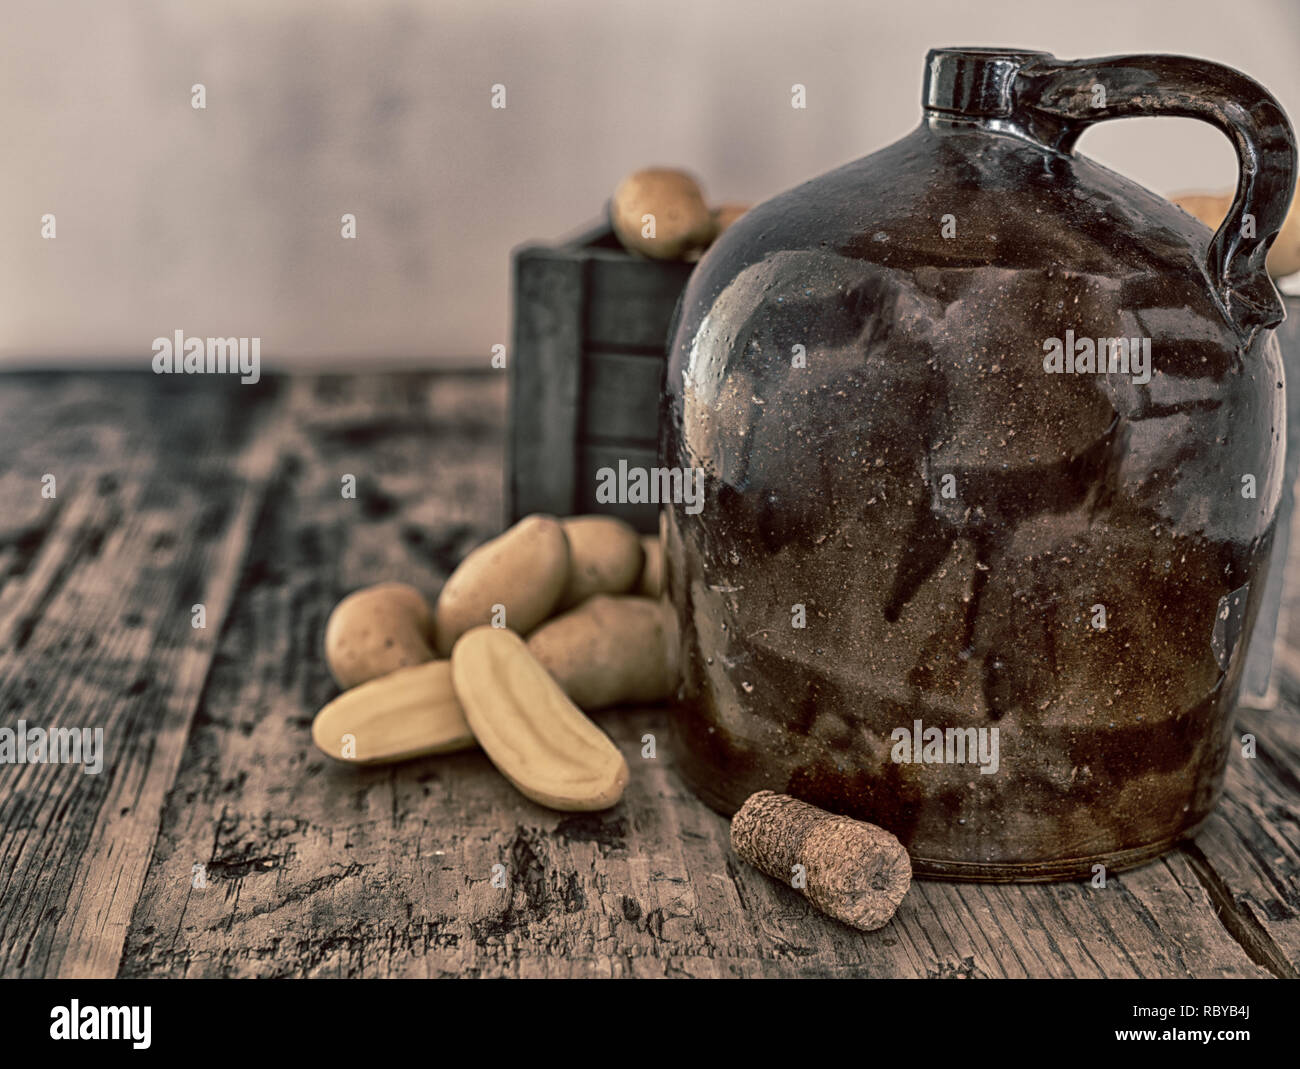 vintage moonshine jug on a rustic wooden table with potatoes and corn cob cork for distilling hard liquor Stock Photo